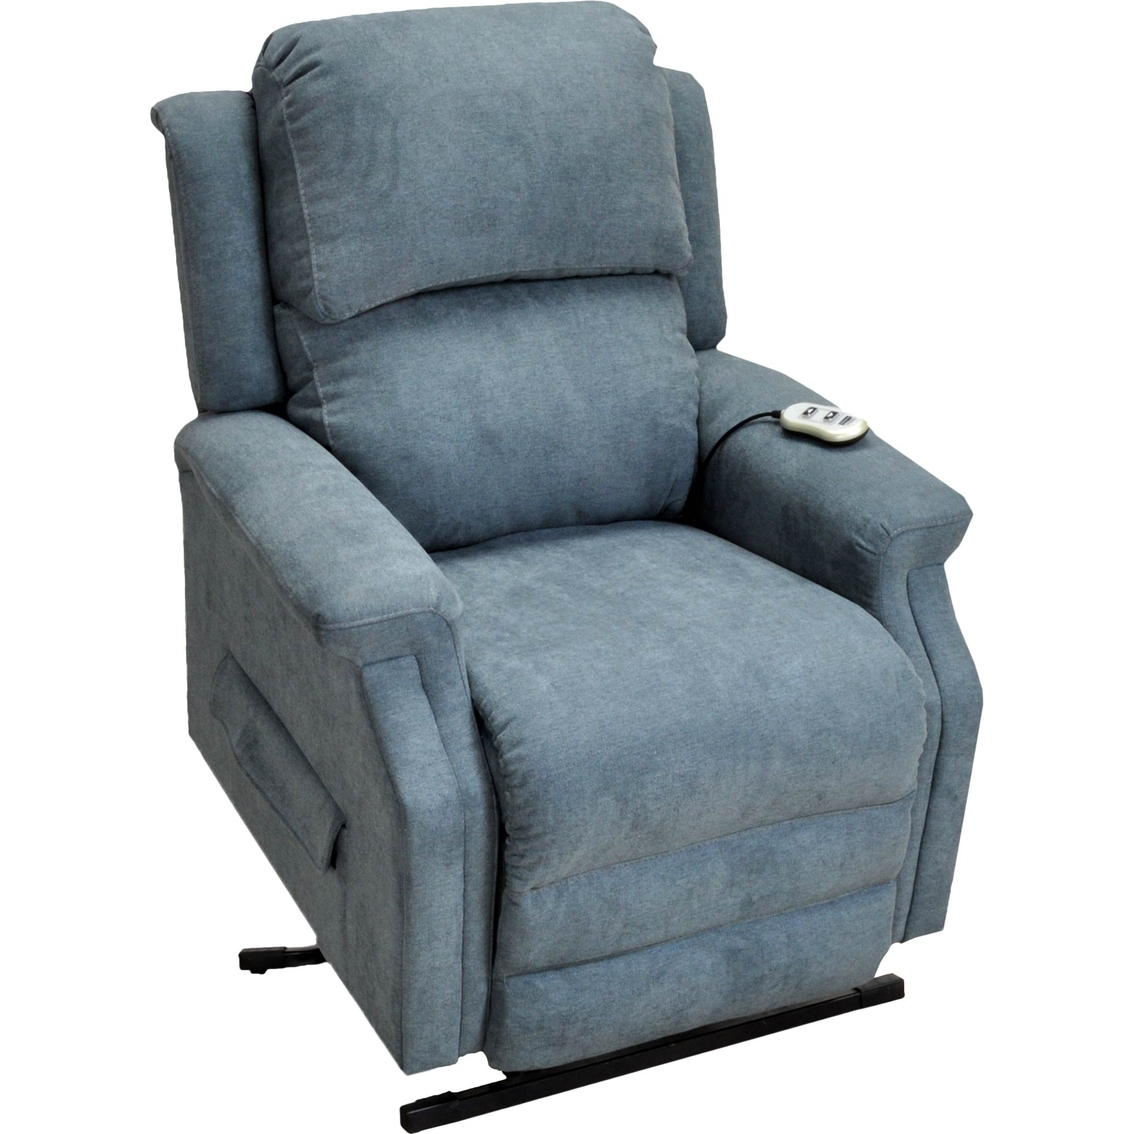 small lift chairs recliners office chair quikr bangalore franklin arthur recliner with lumbar massage